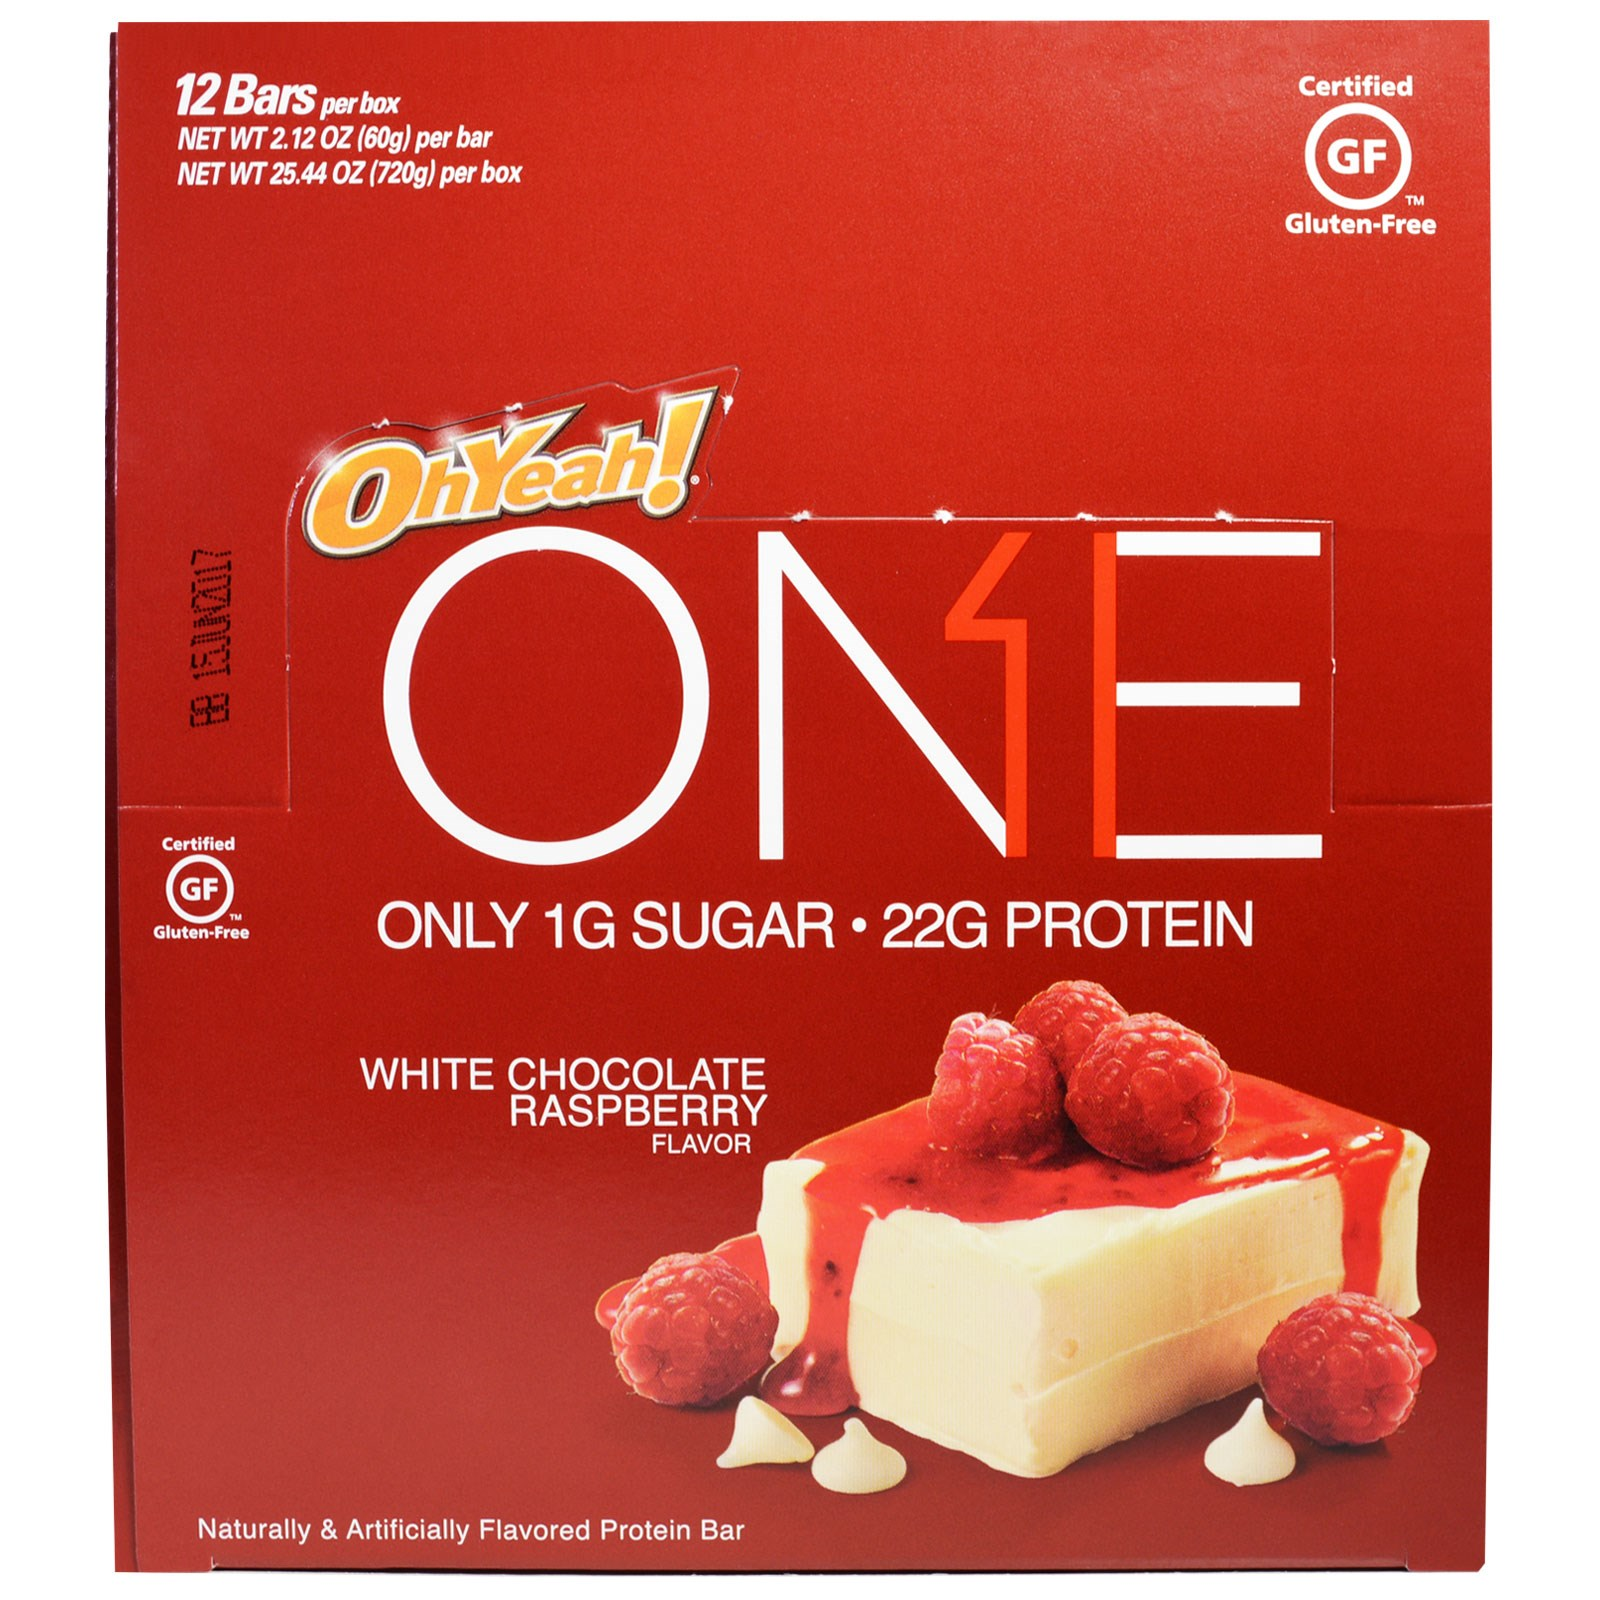 Oh Yeah!, One Bar, White Chocolate Raspberry, 12 Bars, 2.12 oz (60 g) Each